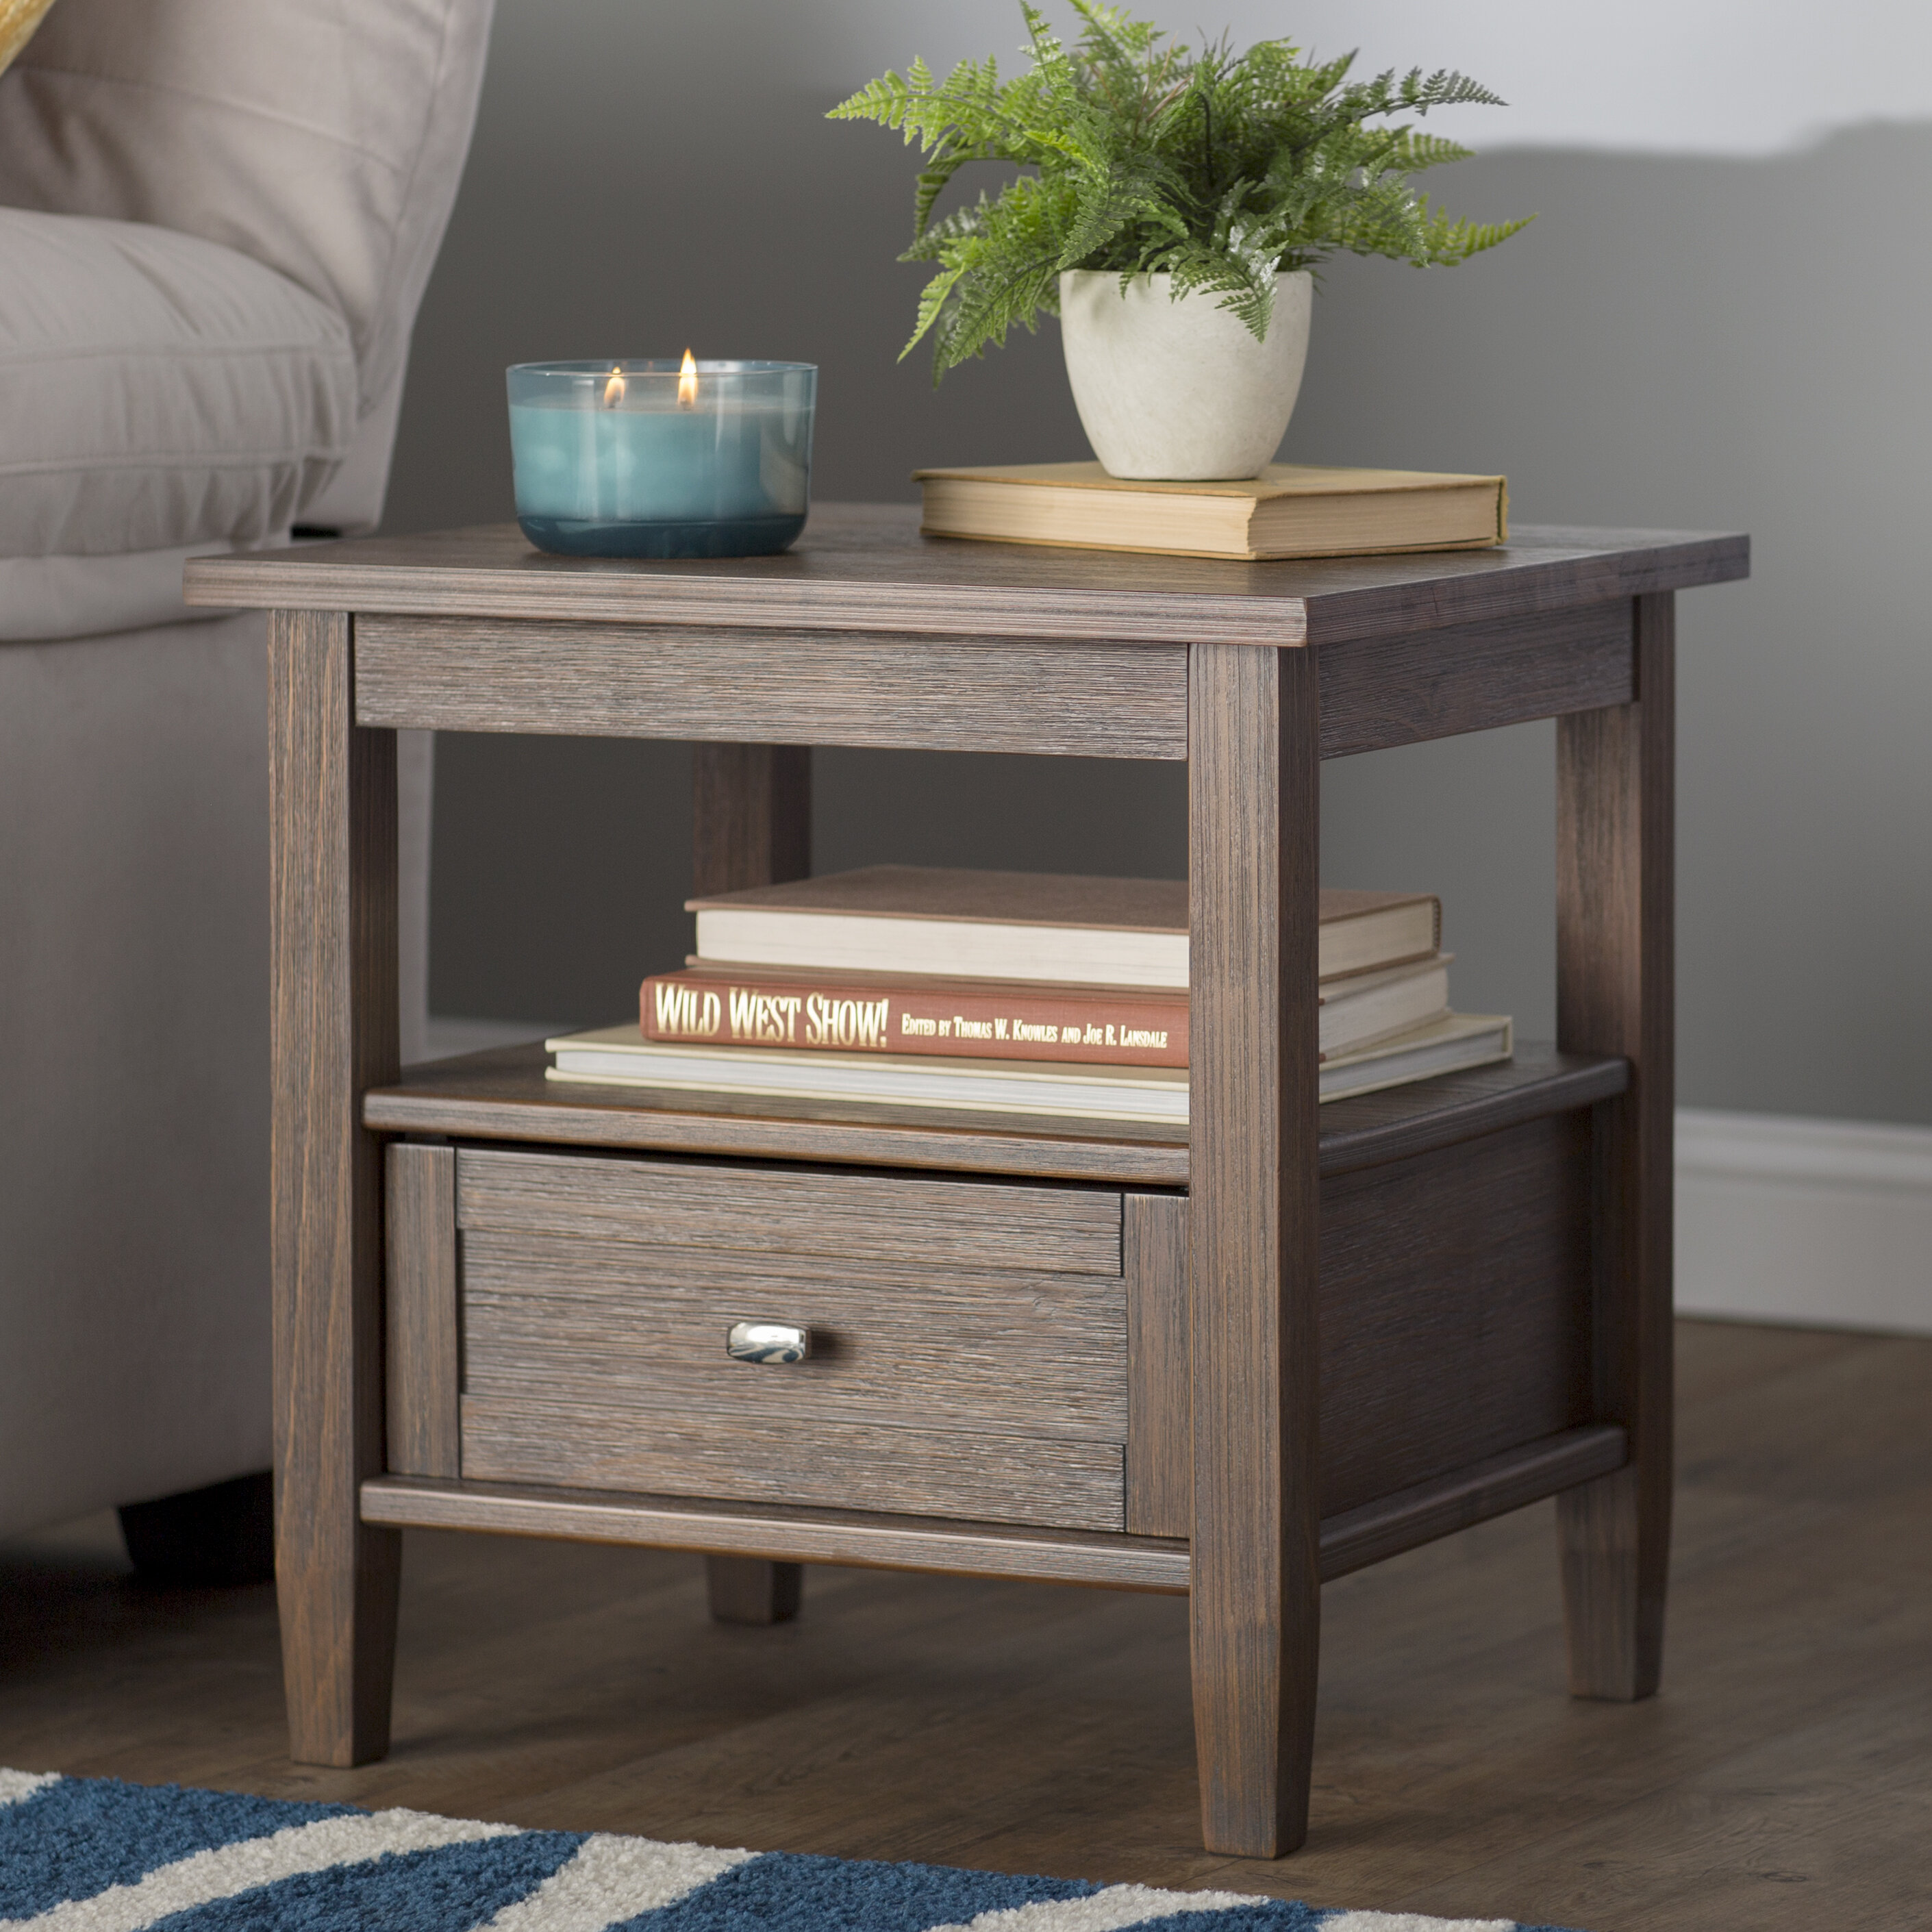 Alcott Hill Solid Wood 4 Legs 1 Drawer End Table With Storage Reviews Wayfair